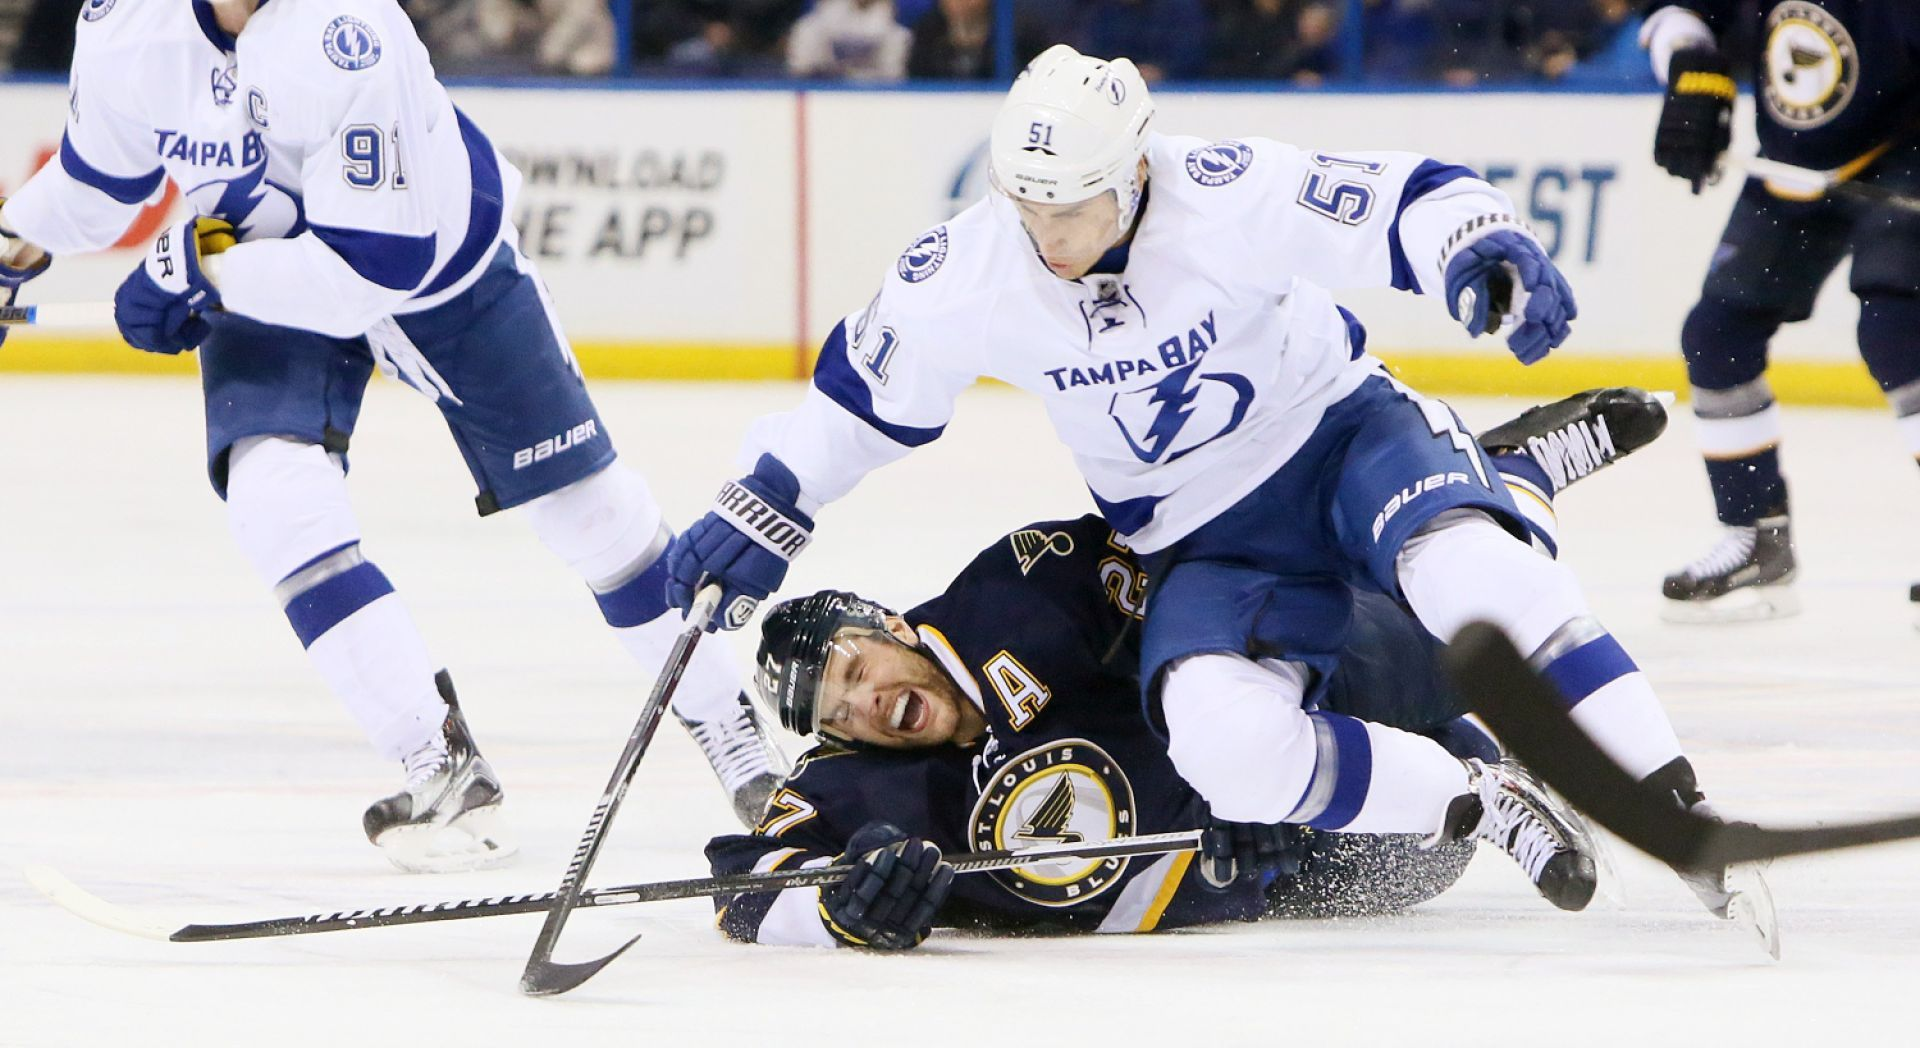 Blues have to move on without Shattenkirk